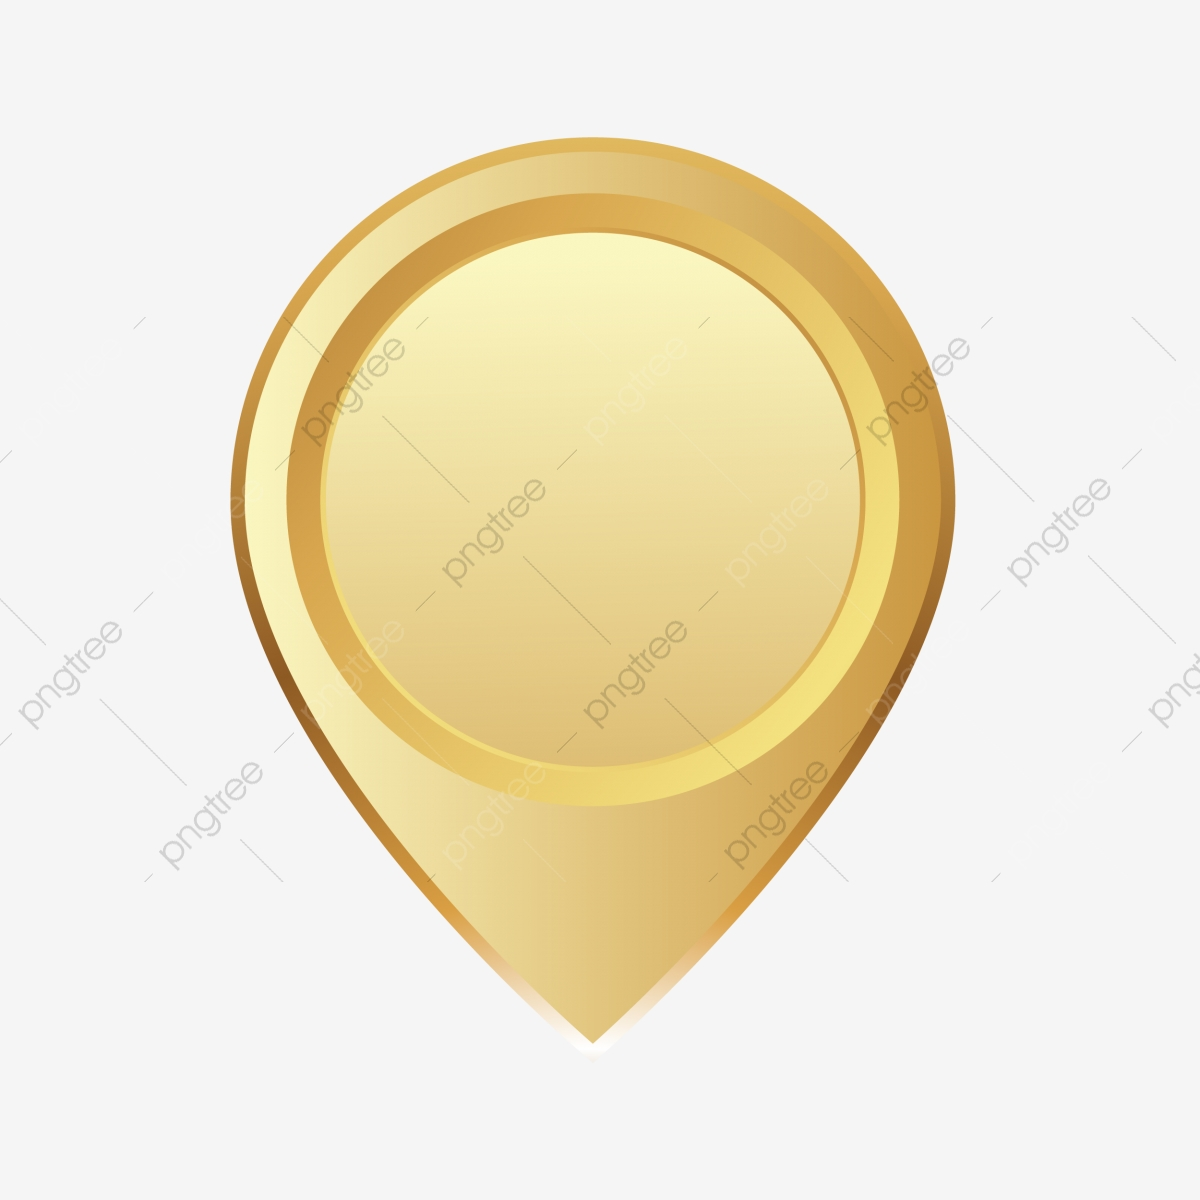 location gold icon vector location clipart landmark png and vector with transparent background for free download https pngtree com freepng location gold icon vector 3620929 html